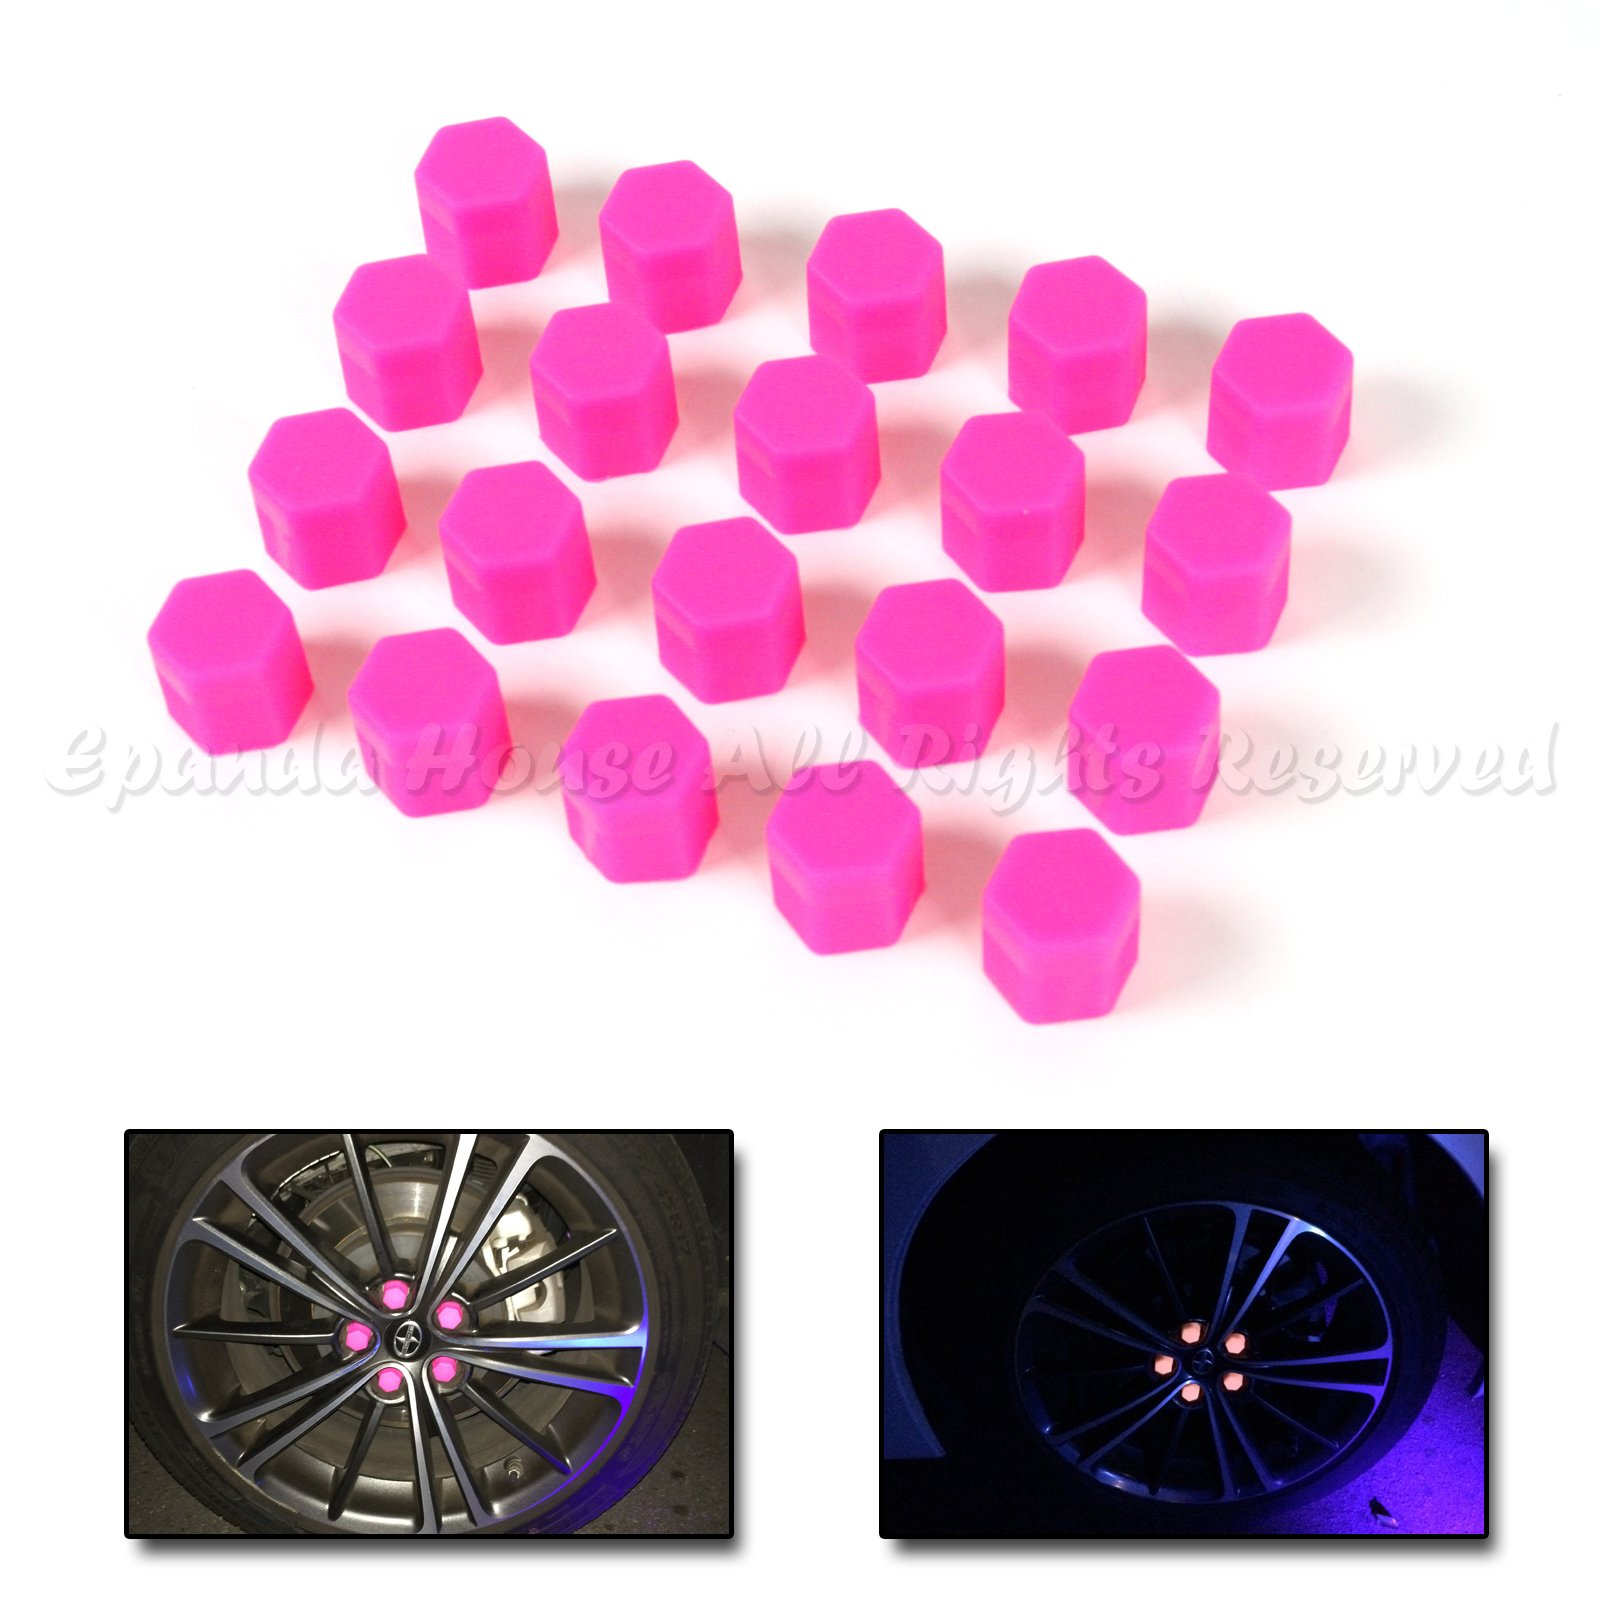 21mm 20X Glow In The Dark Blacklight Wheel Rim Lug Nuts Covers Cars/Bikes Pink by EpandaHouse (Image #1)